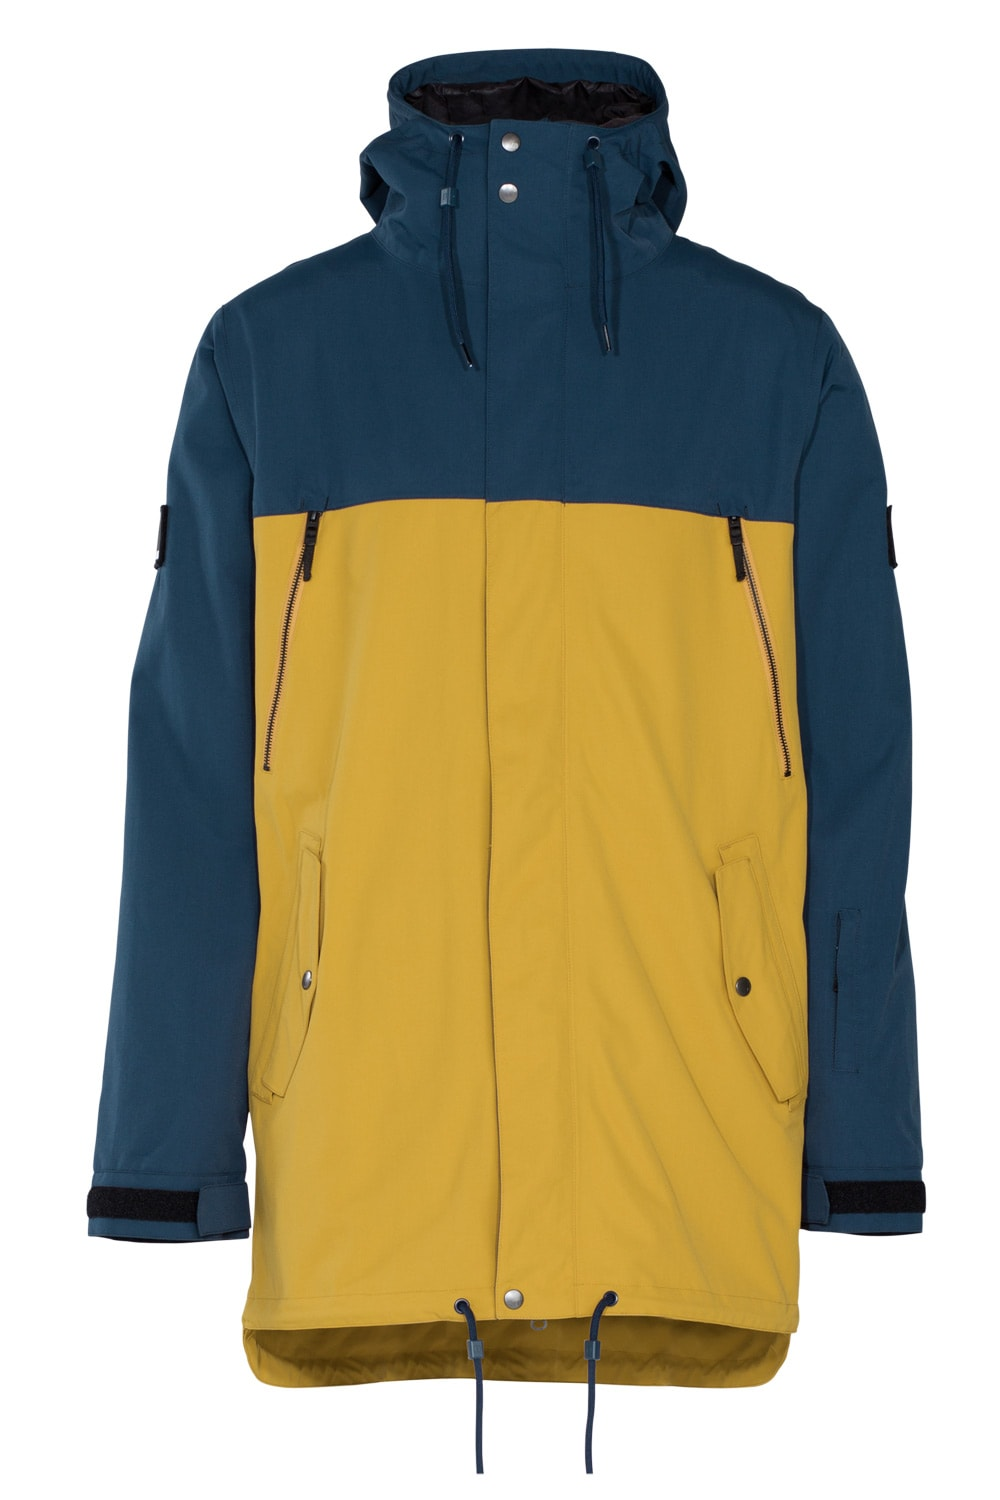 on sale armada apex ski jacket up to 40